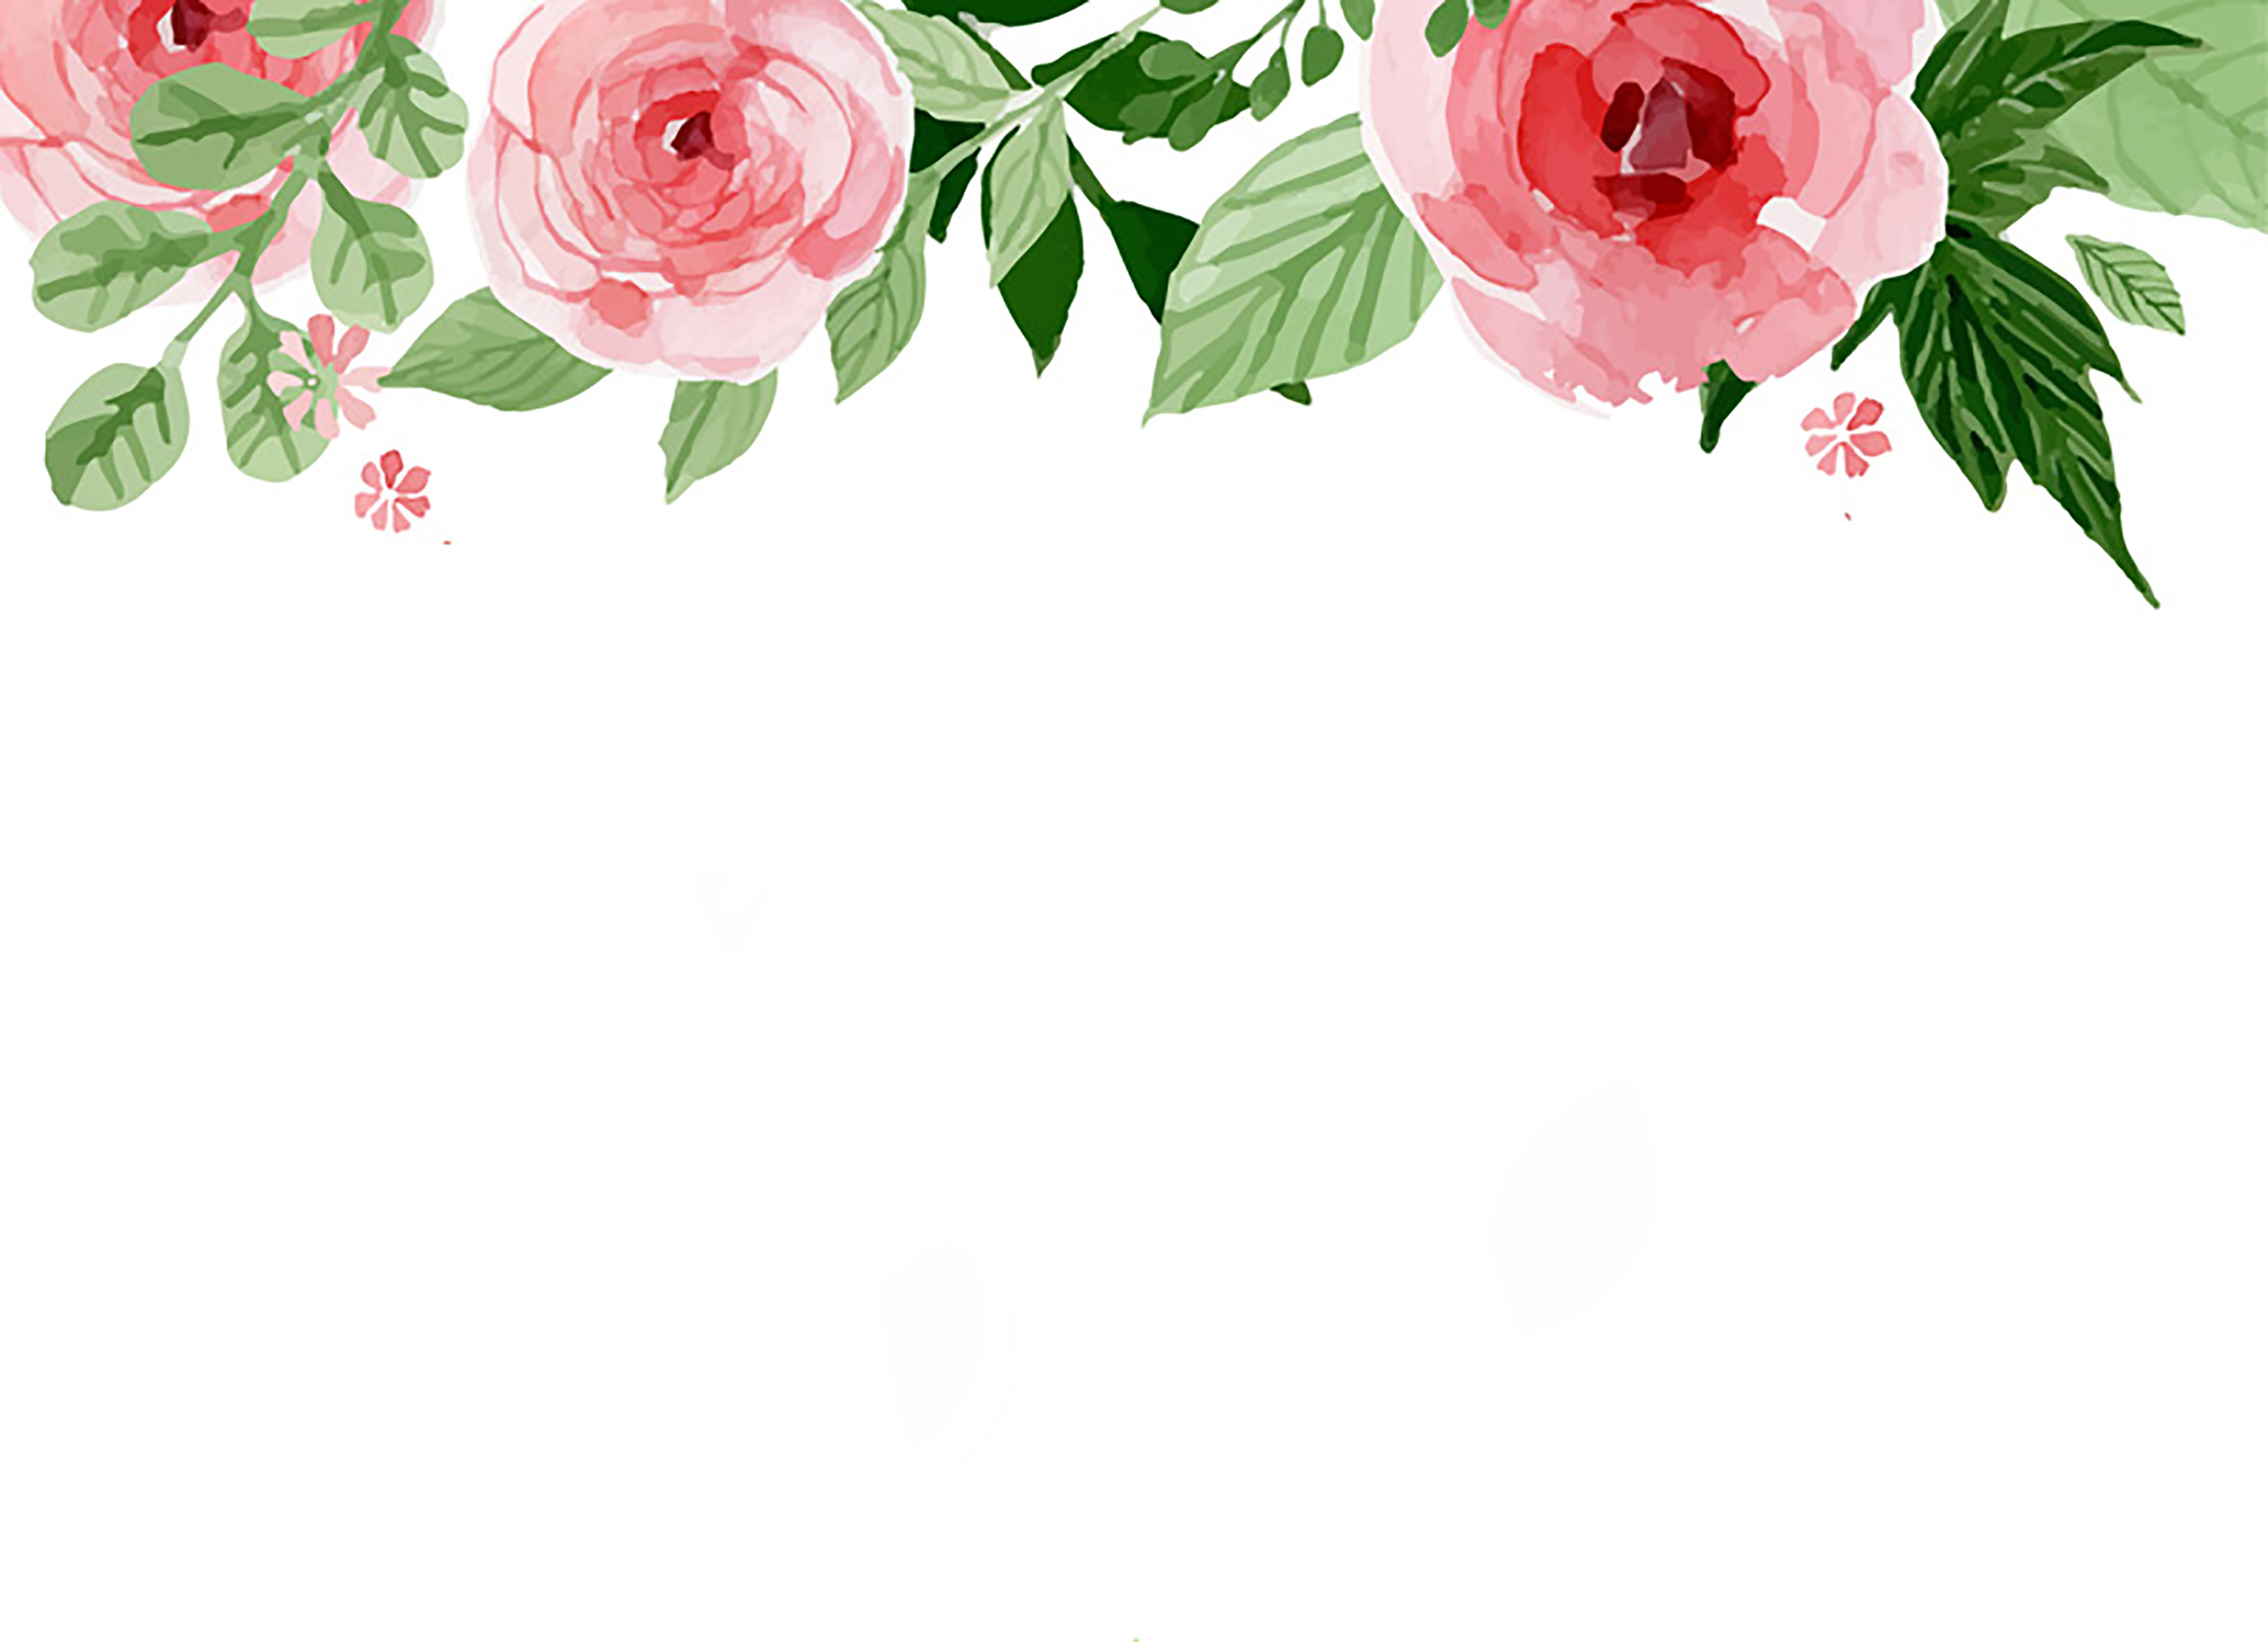 aquarelle floral fleur section contexte simple aquarelle